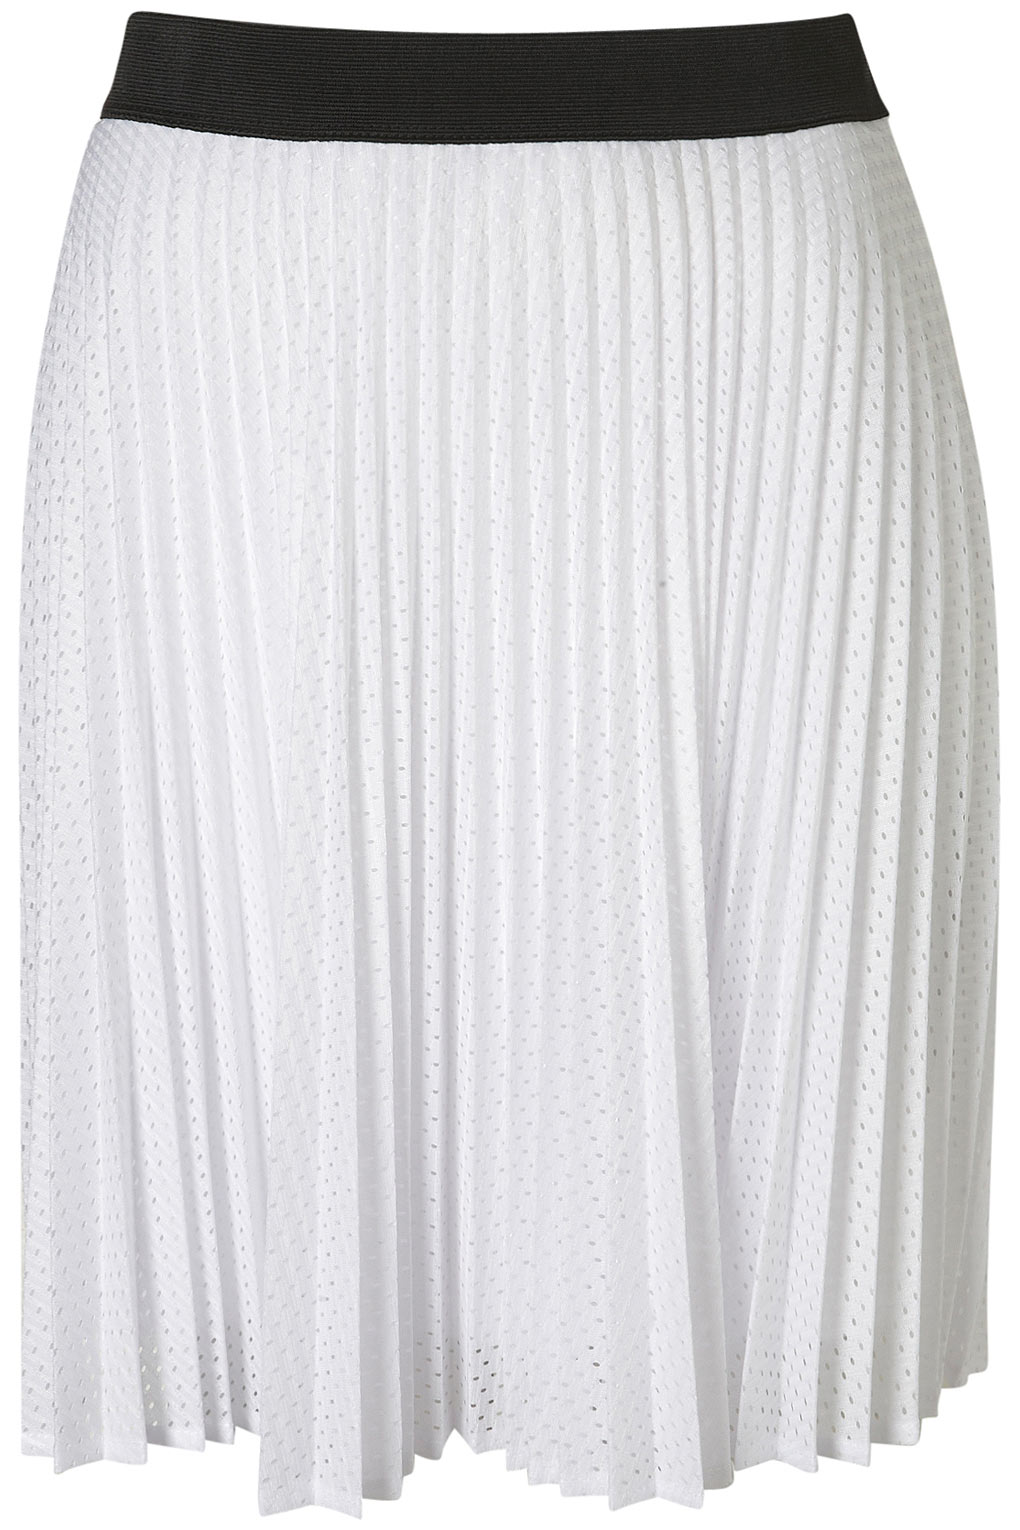 What To Wear With A White Pleated Skirt Carey Fashion